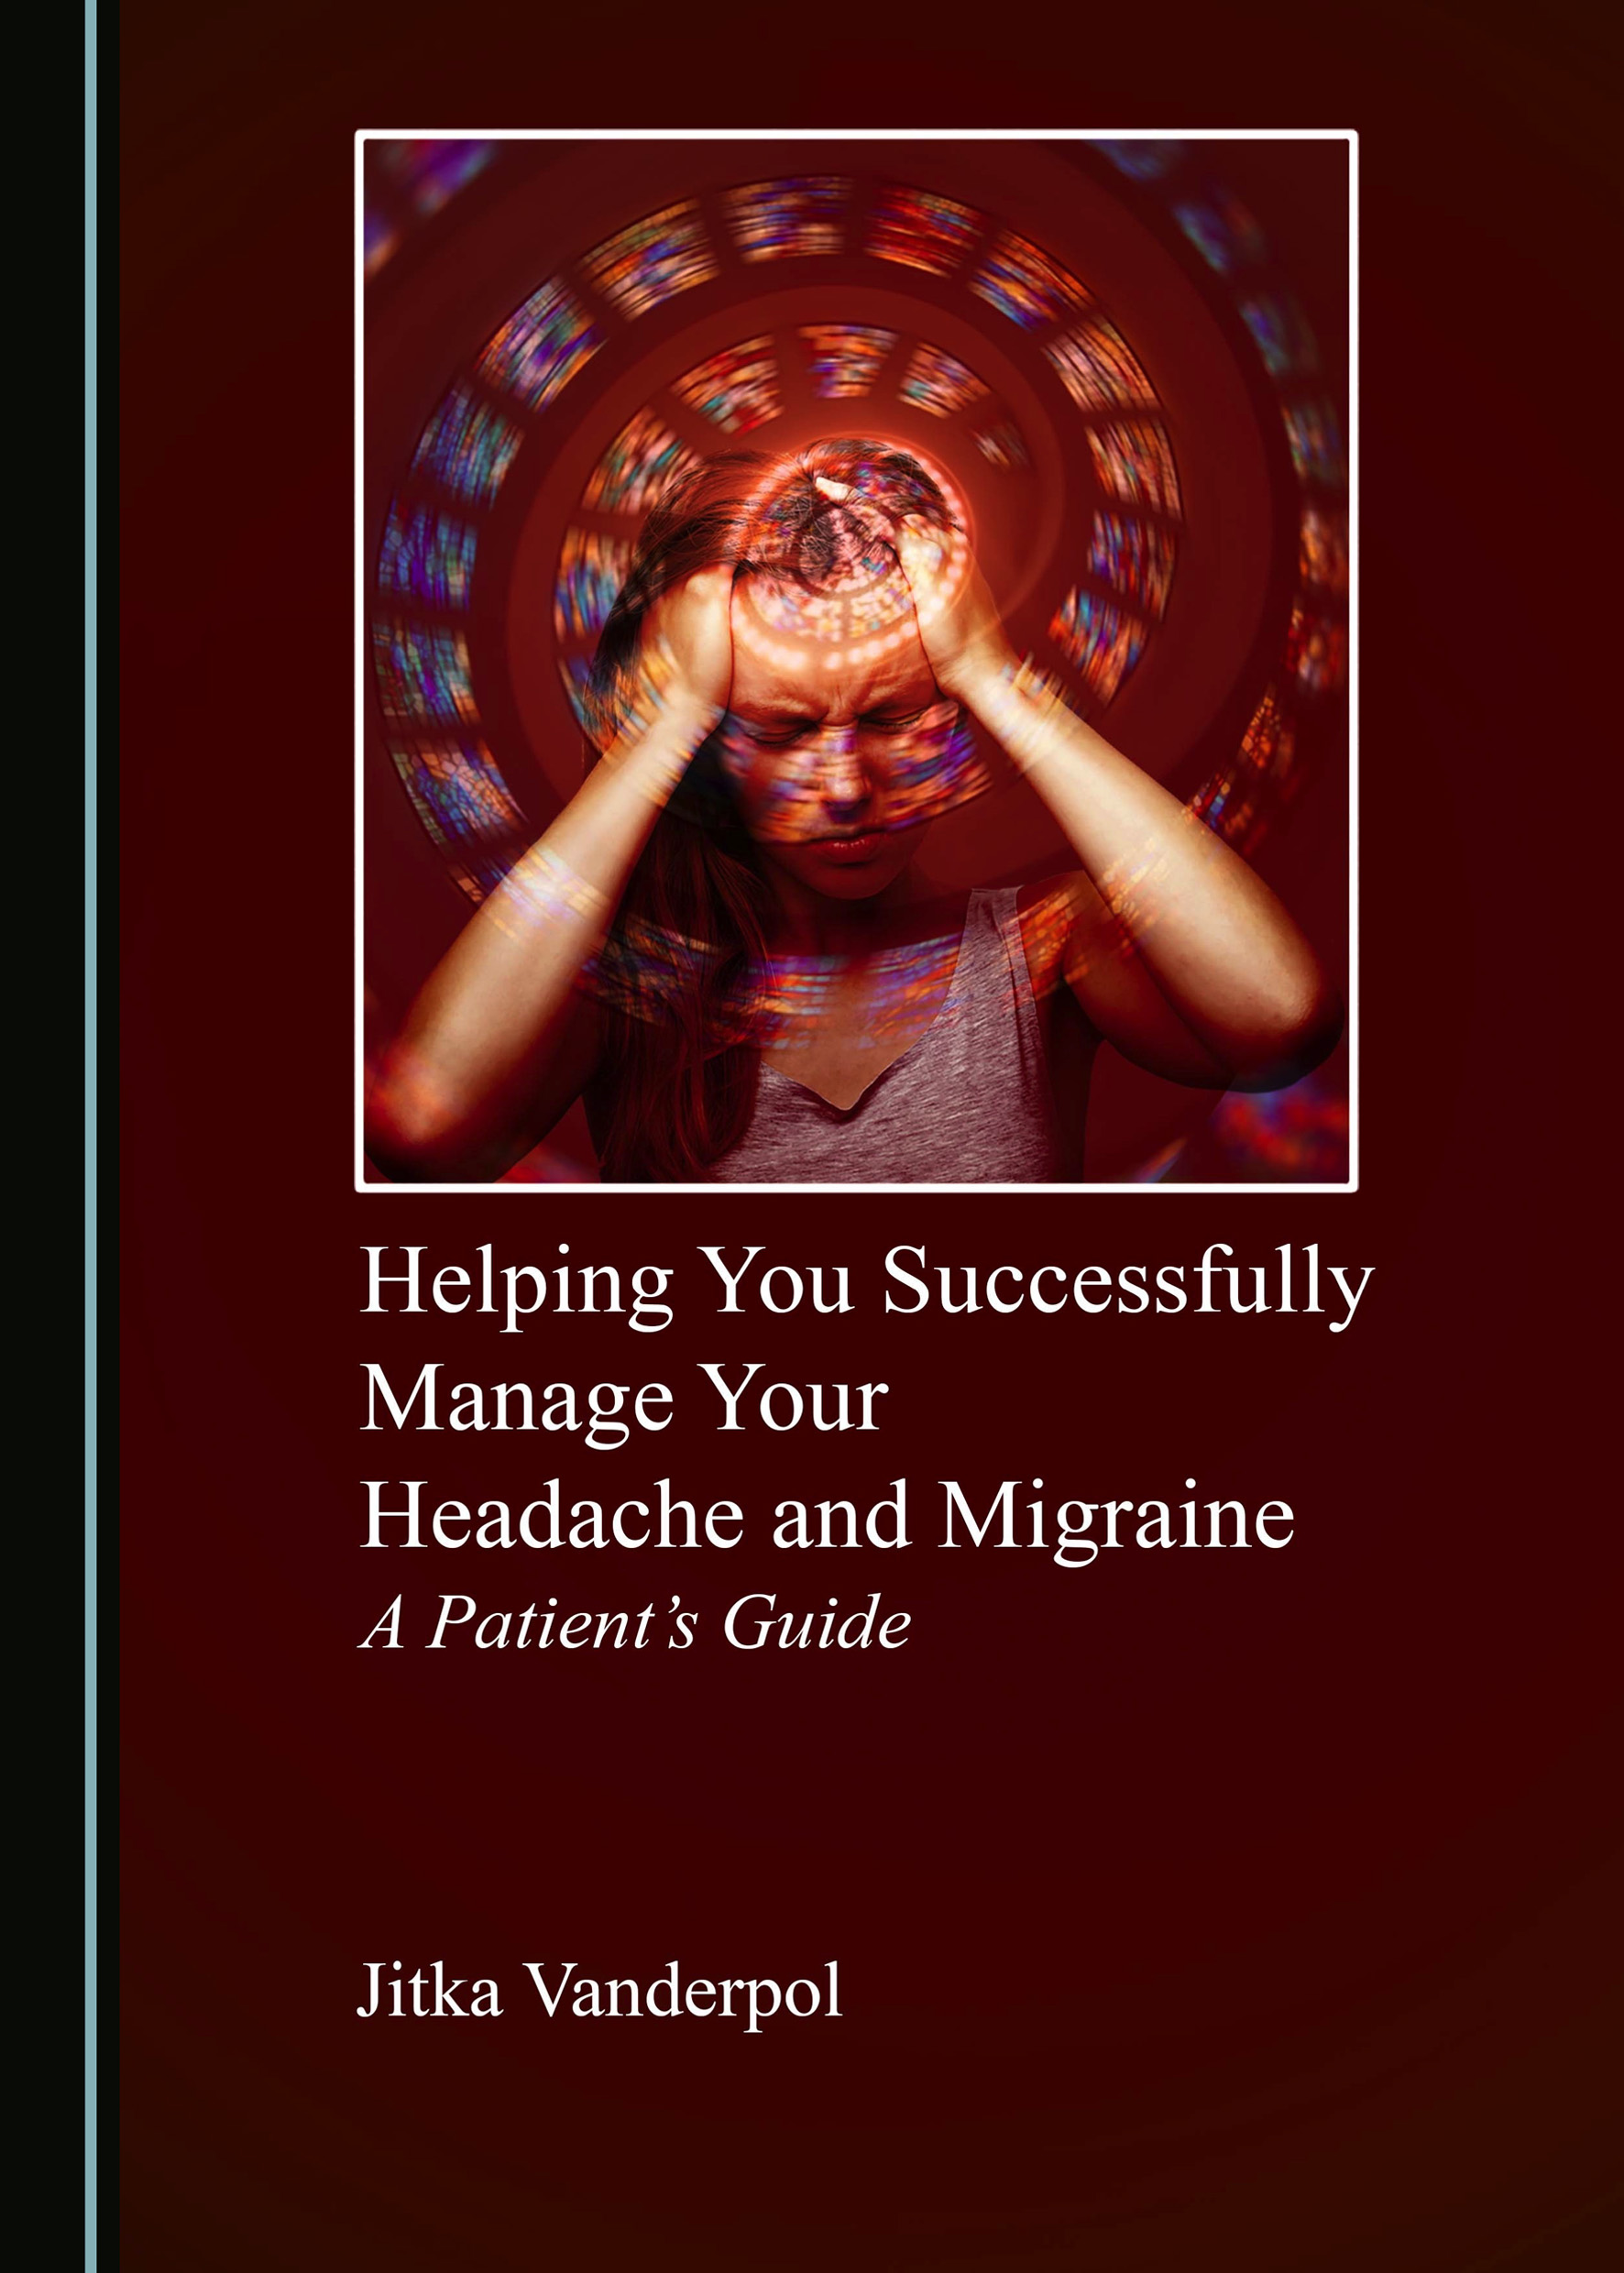 Helping You Successfully Manage Your Headache and Migraine: A Patient's Guide